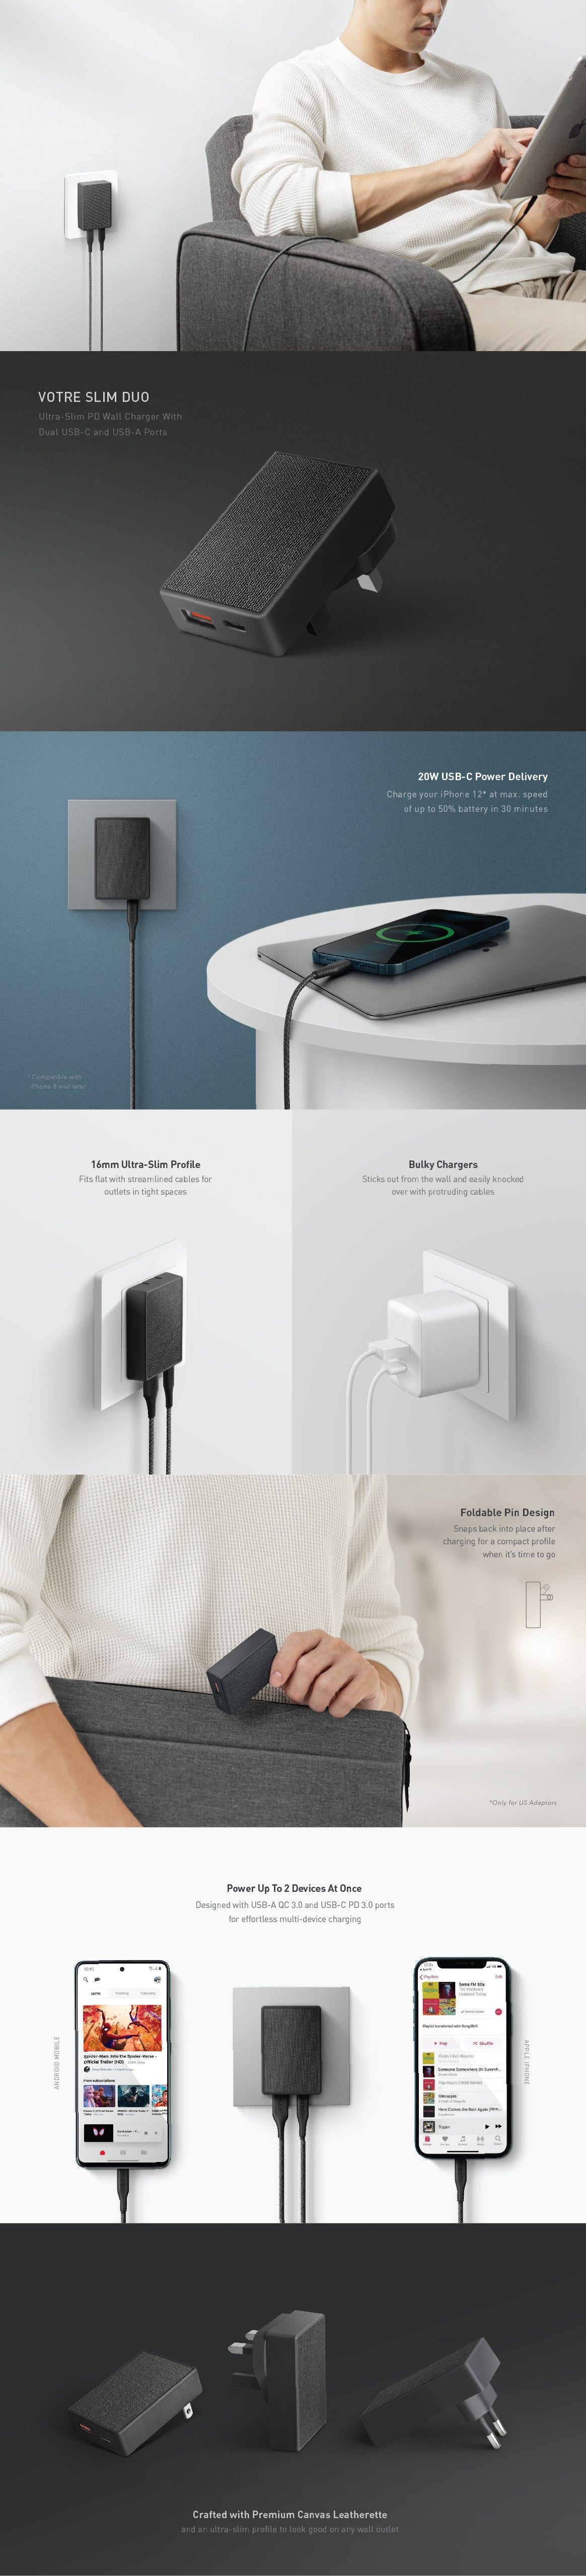 UNIQ Votre Slim Duo Dual-Port Wall Charger with 20W Power Delivery to fast charge iPhone 12